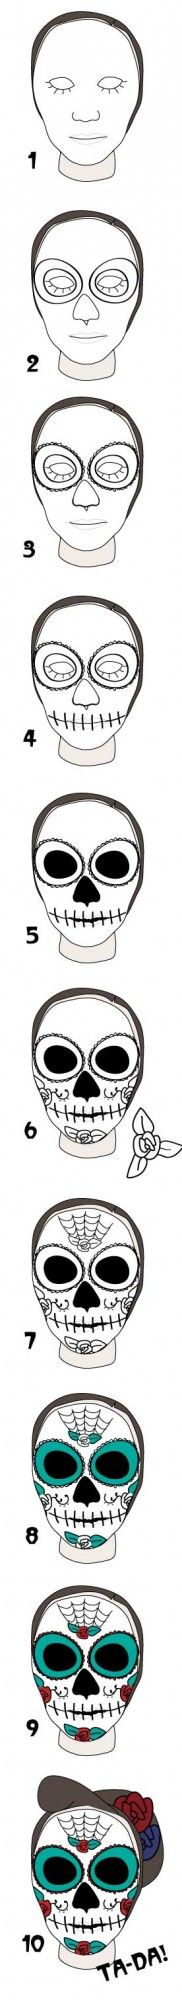 10 Steps To Day Of The Dead Make-Up